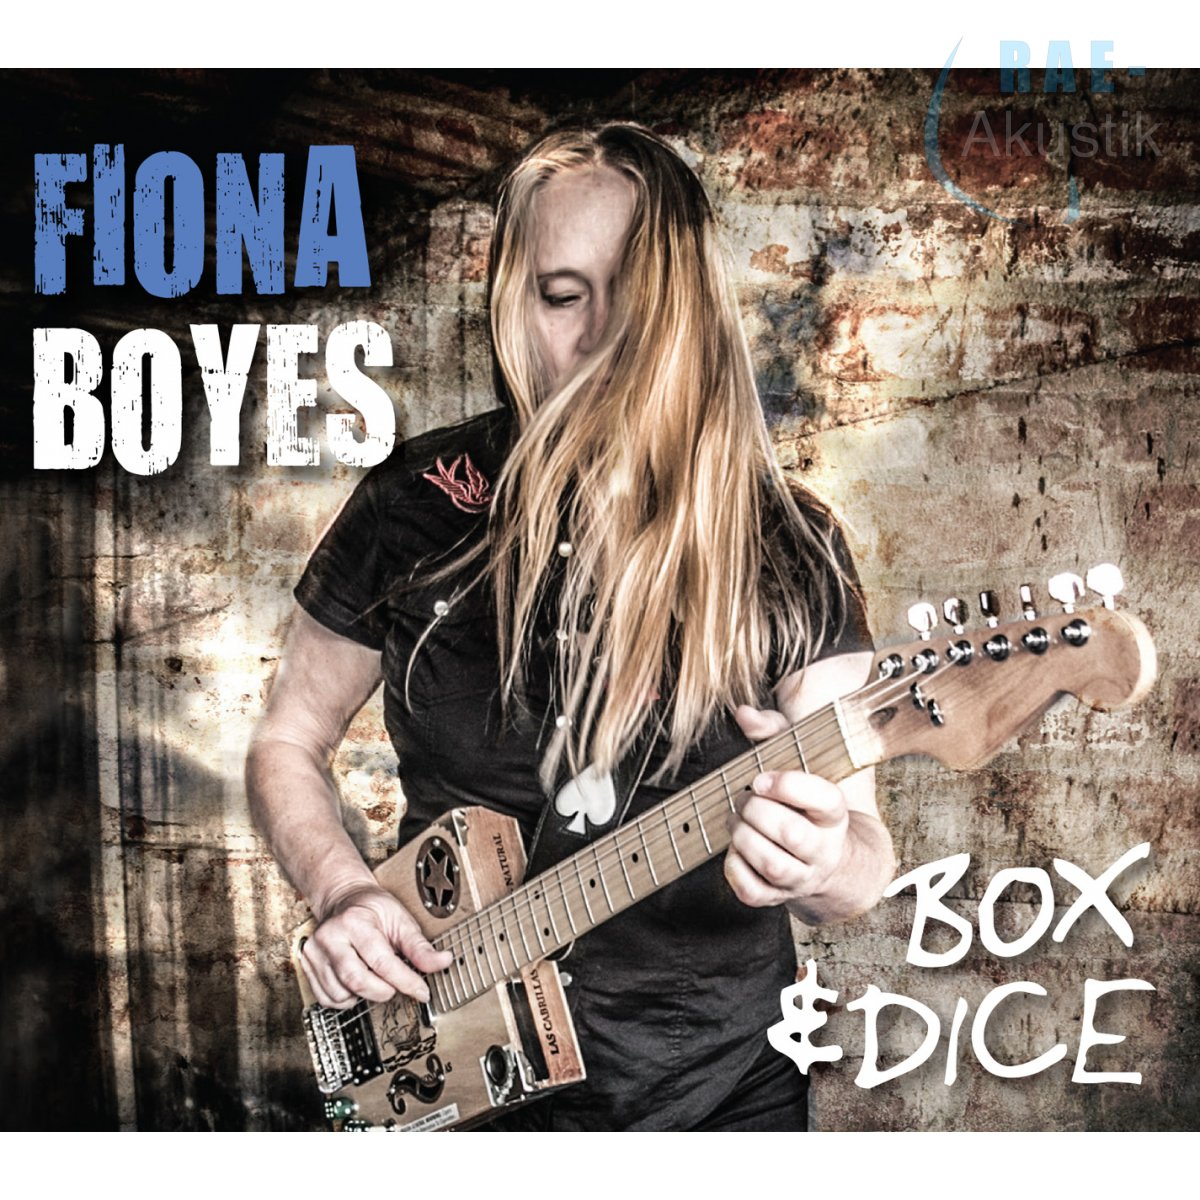 Fiona-Boyes-Box-Dice CD-Cover